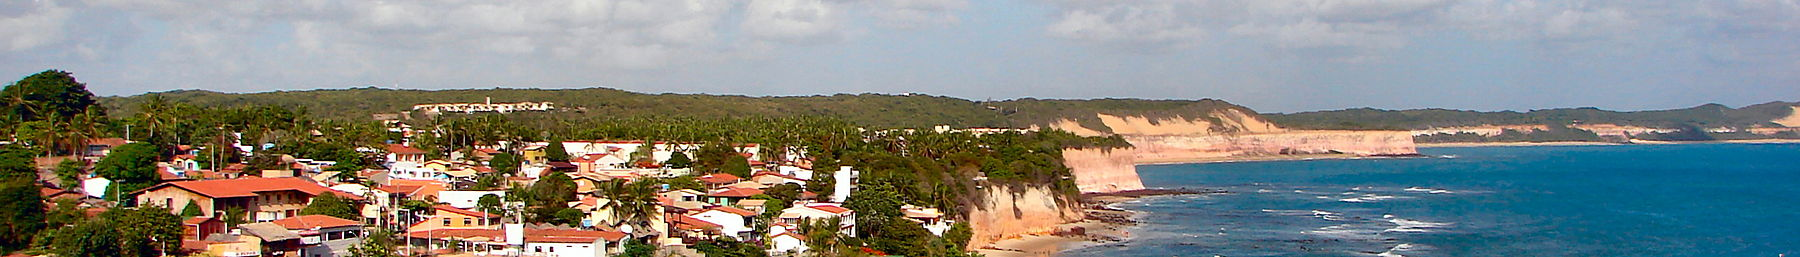 Praia de Pipa banner Beach and town.JPG